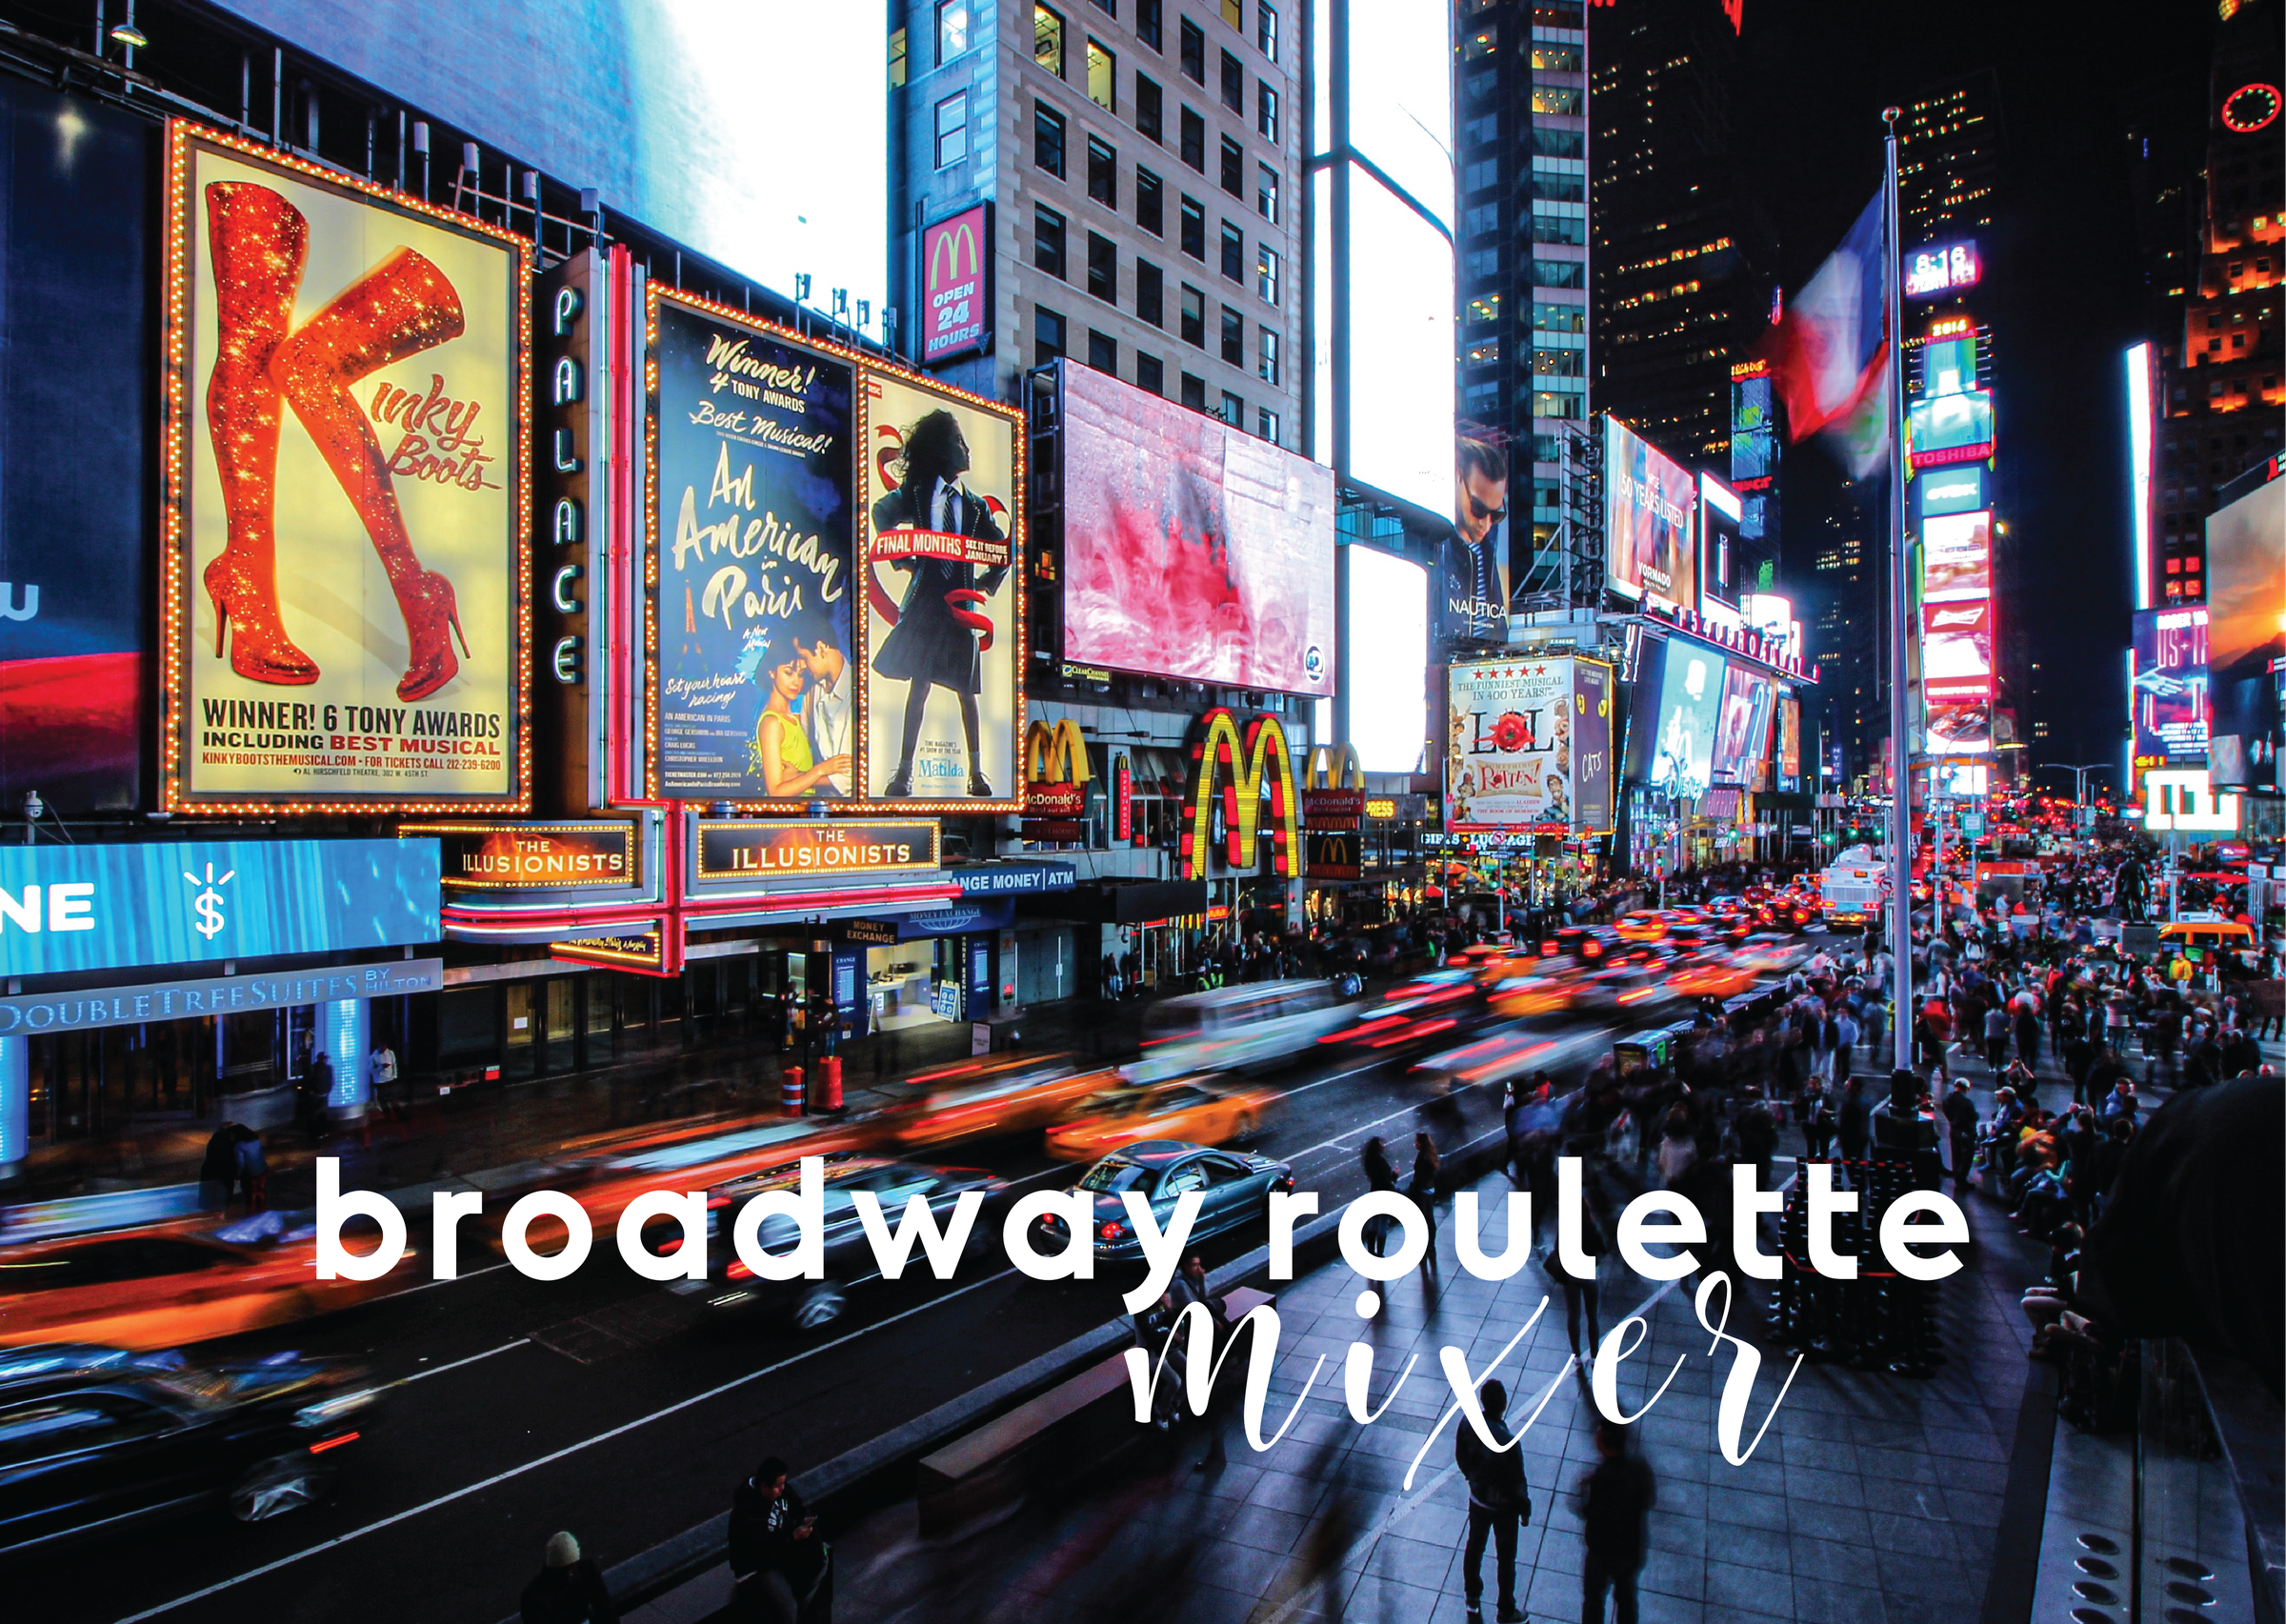 broadway roulette virtual event